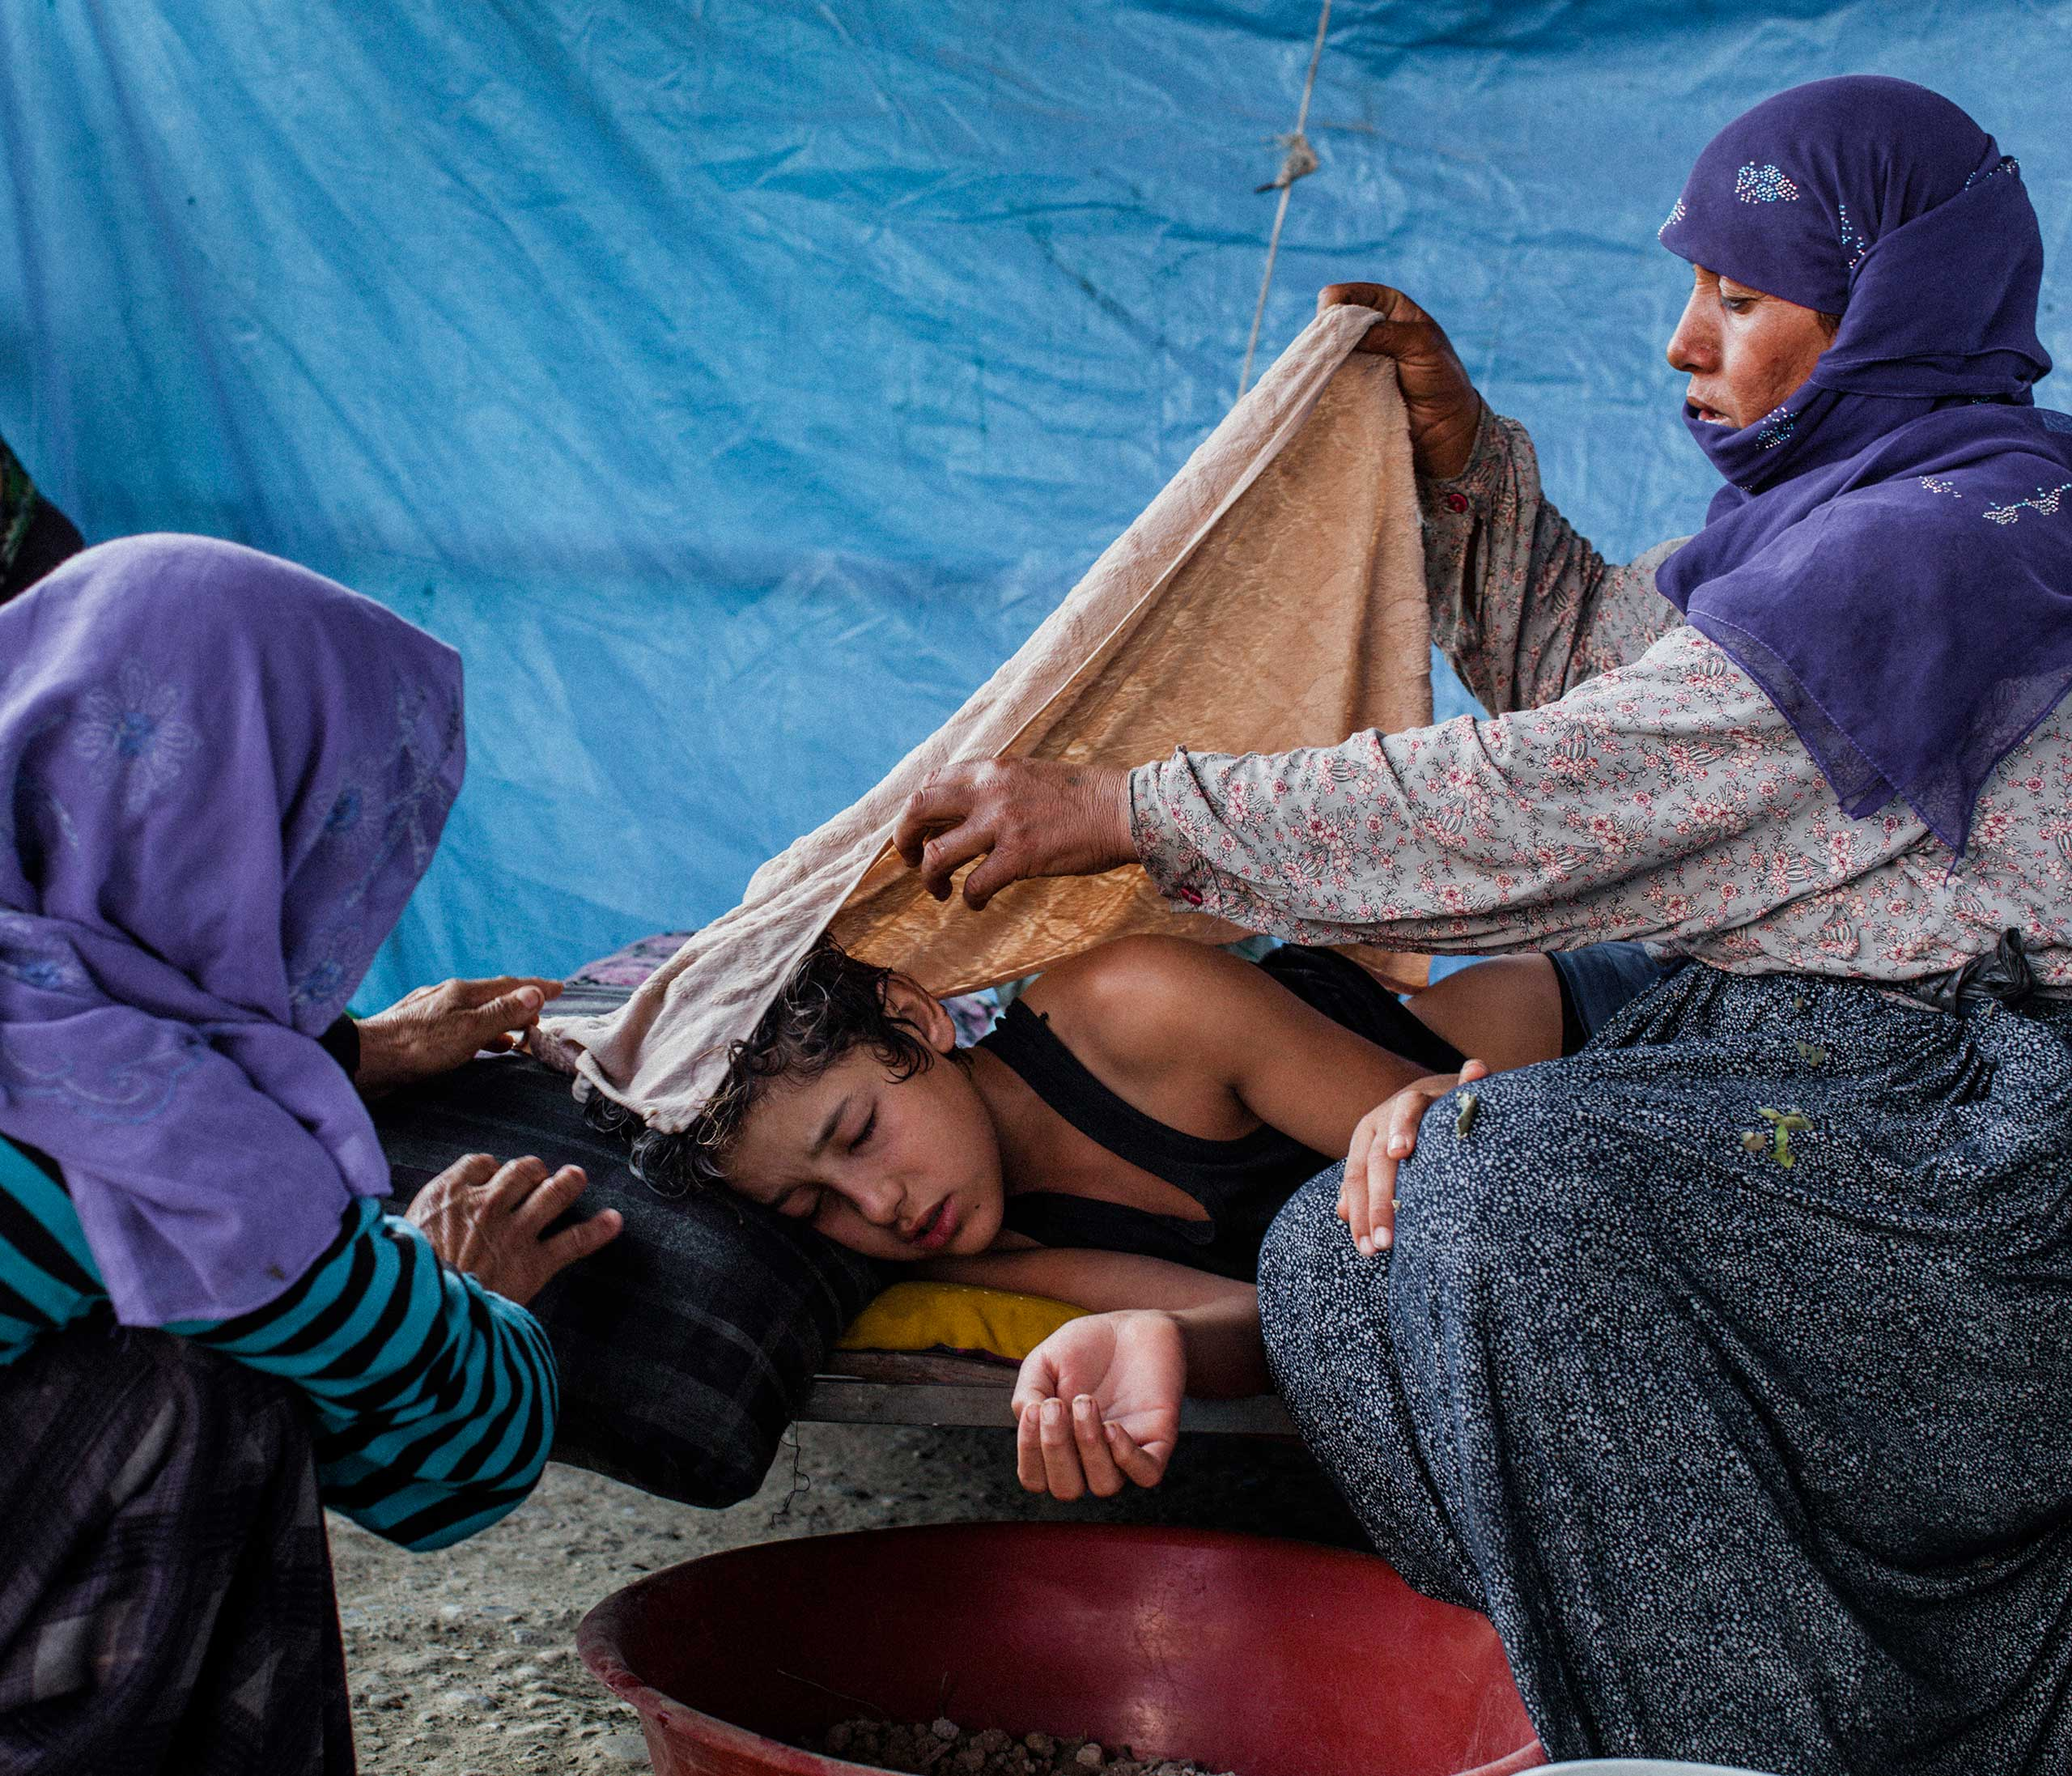 Nizal (14) is tended to by his mother (right) and a relative, after falling ill with a high fever and vomiting. The family was living in a small tented area on the outskirts of Adana in southern Turkey after fleeing Syria. Aug. 2014.